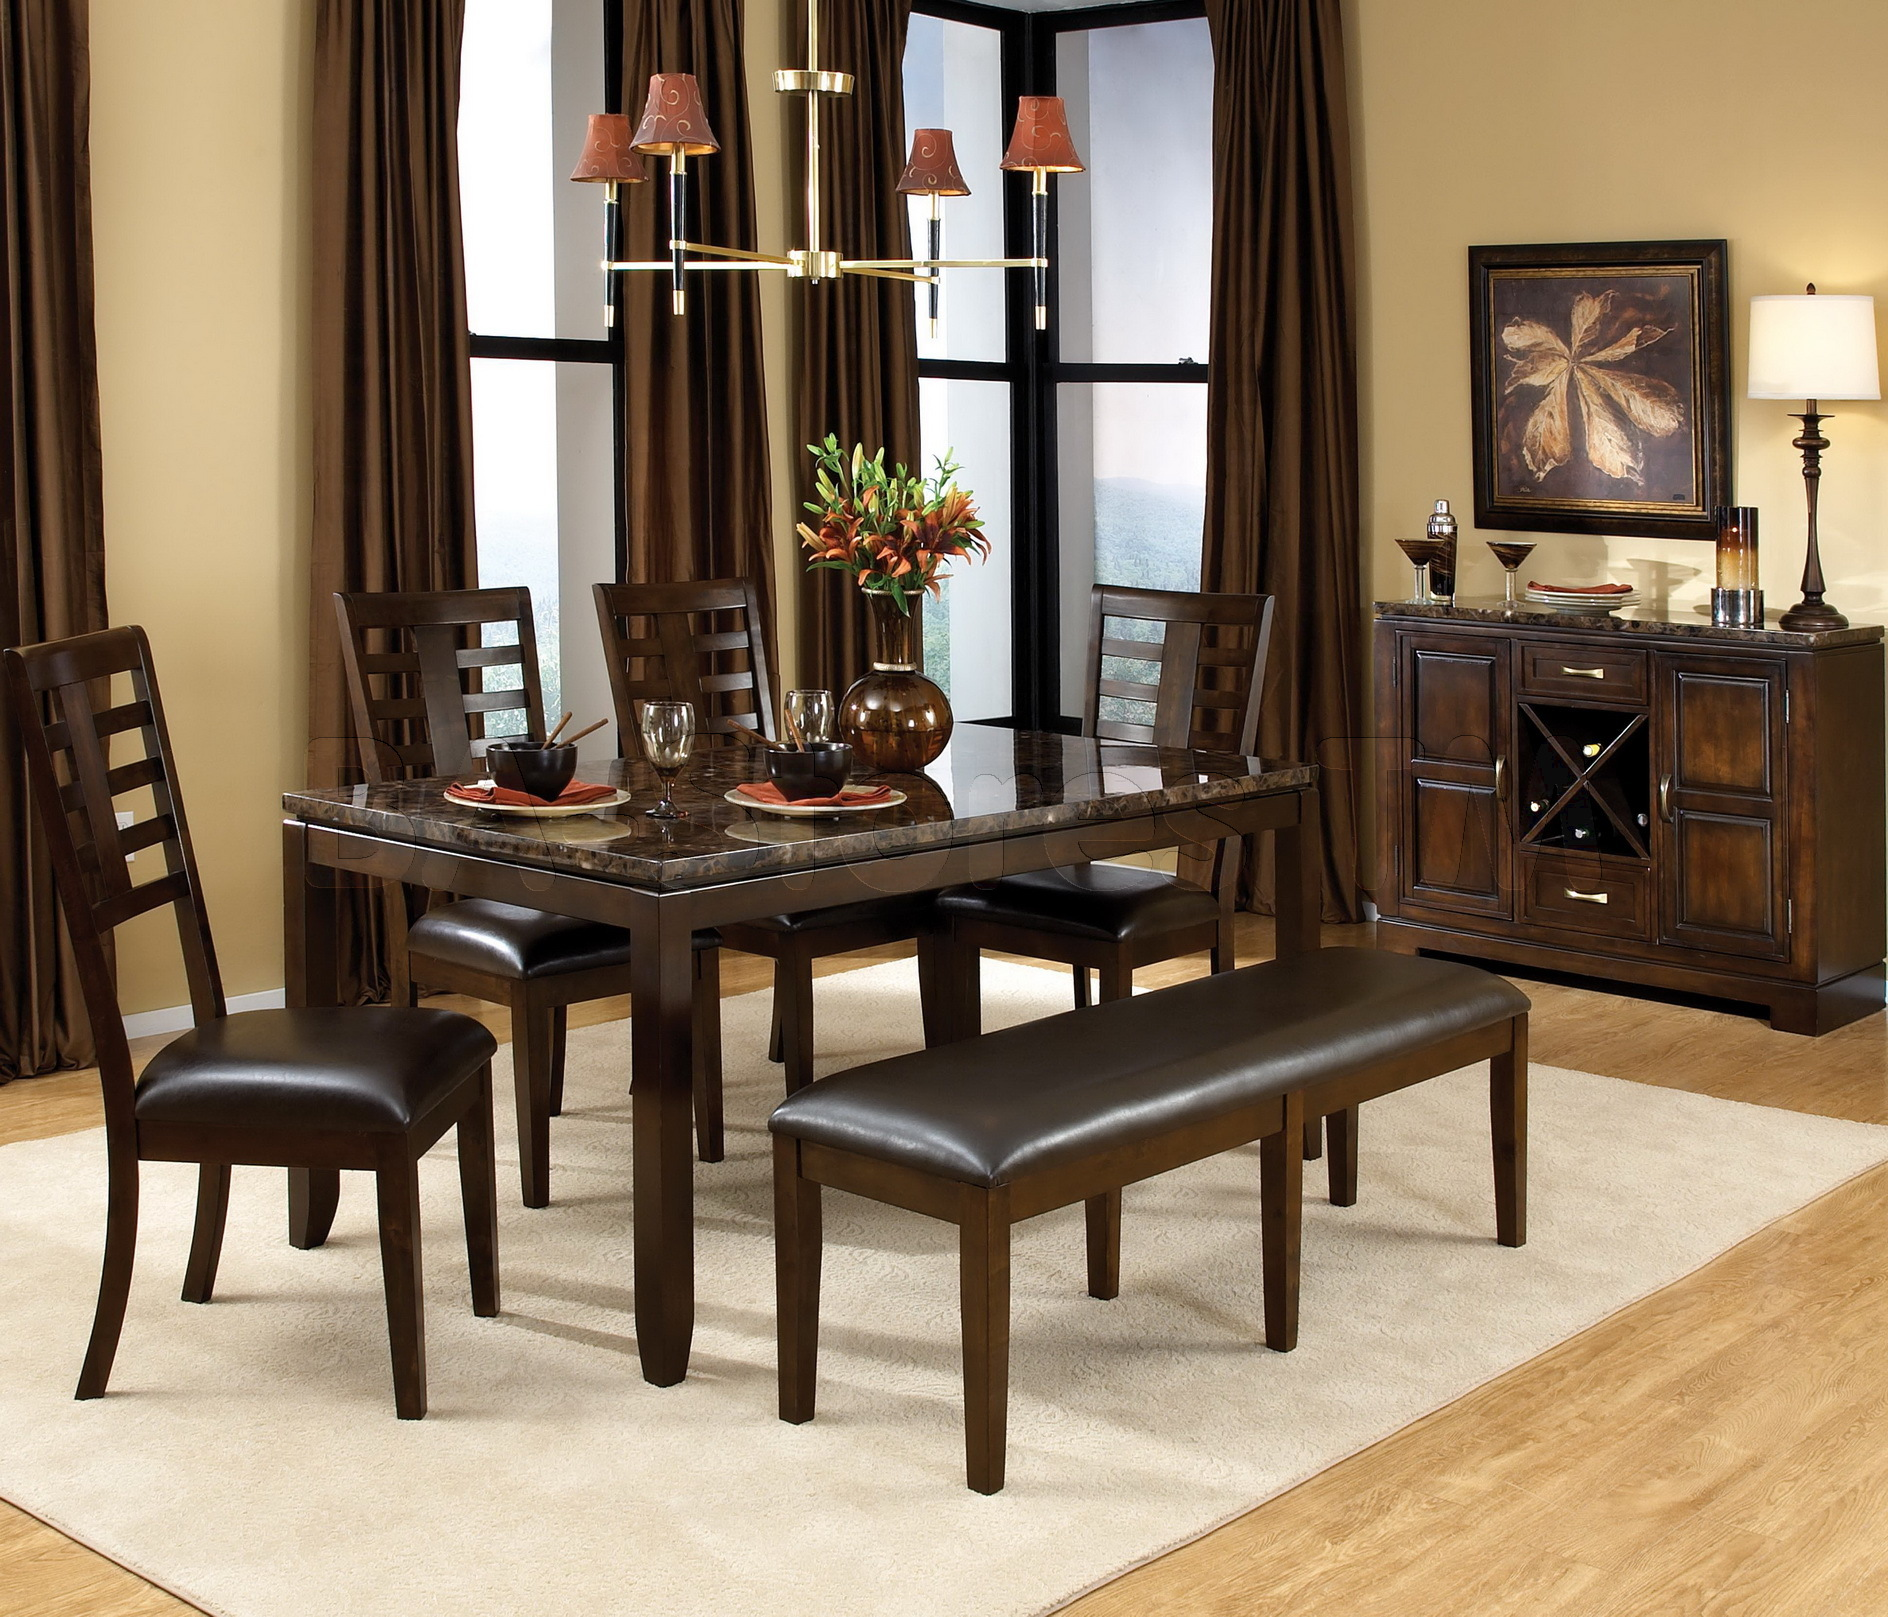 Salem 6pc Breakfast Nook Dining Set Table, Corner Bench ...